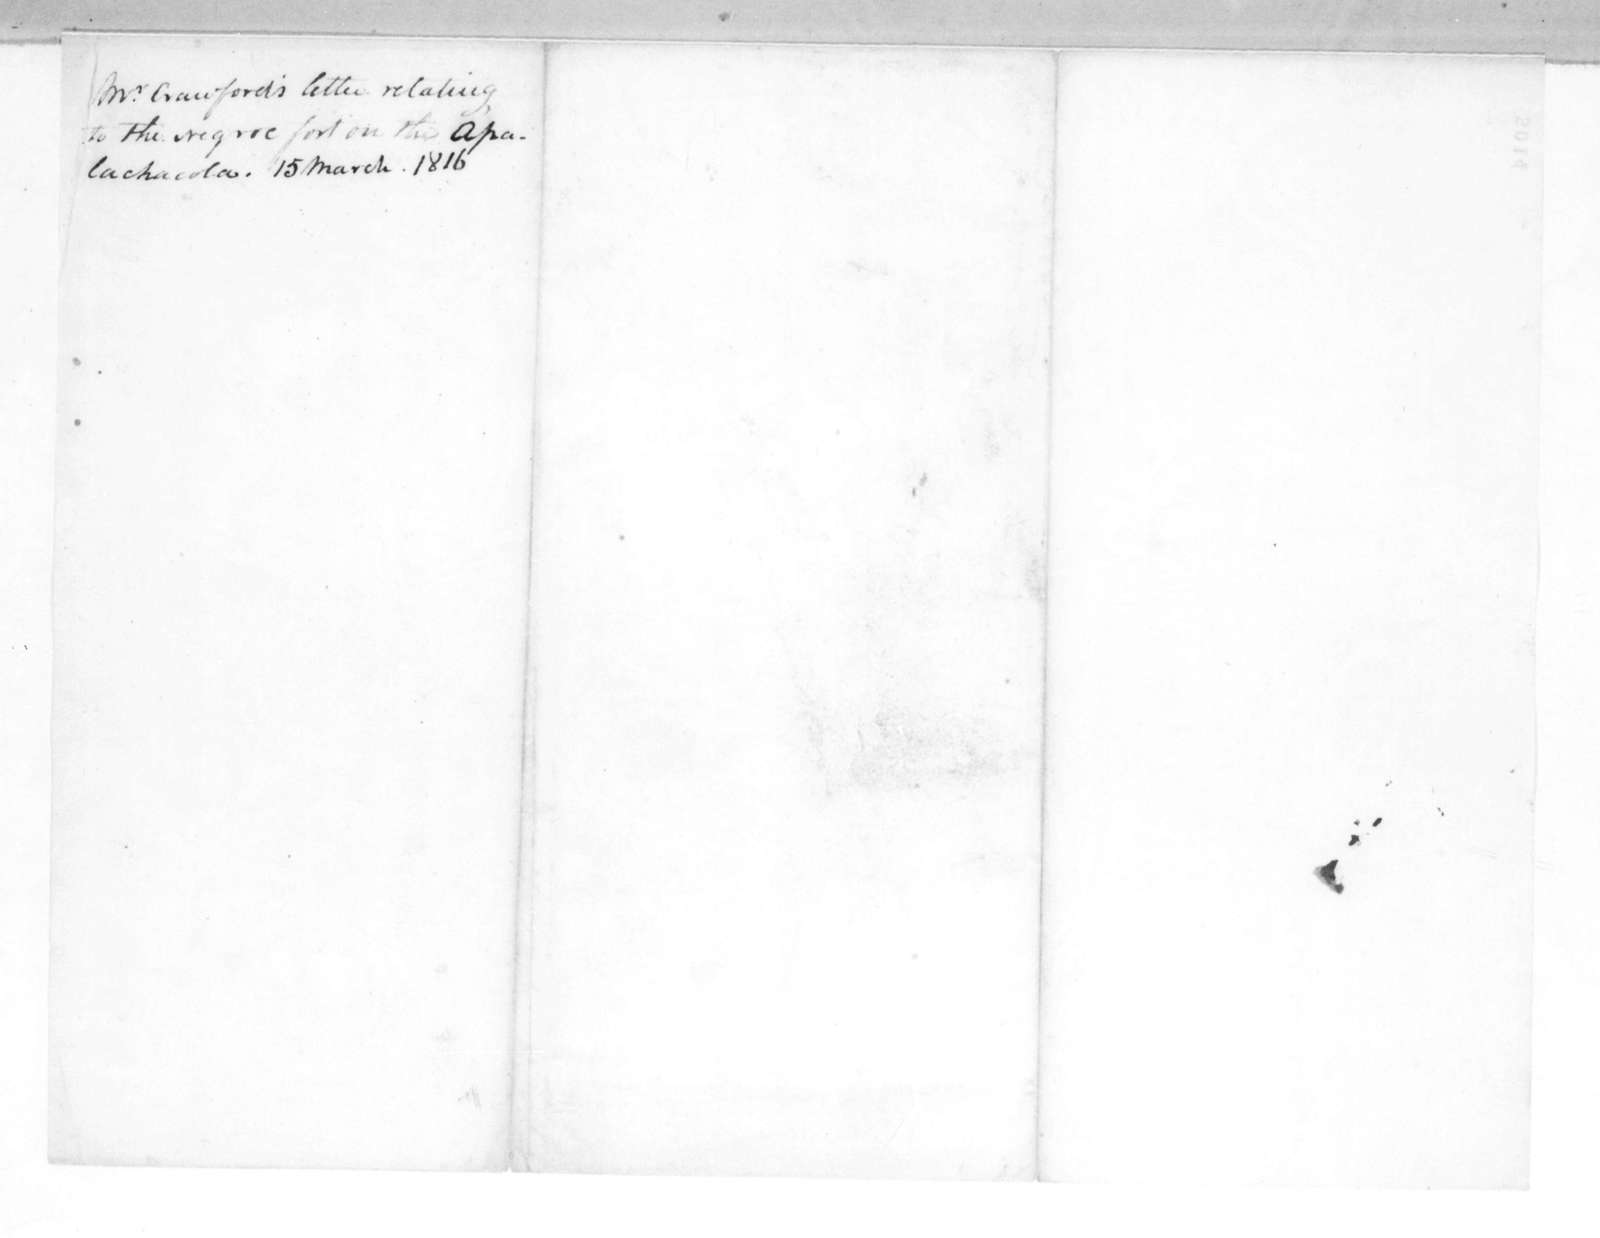 William Harris Crawford to Andrew Jackson, March 14, 1816